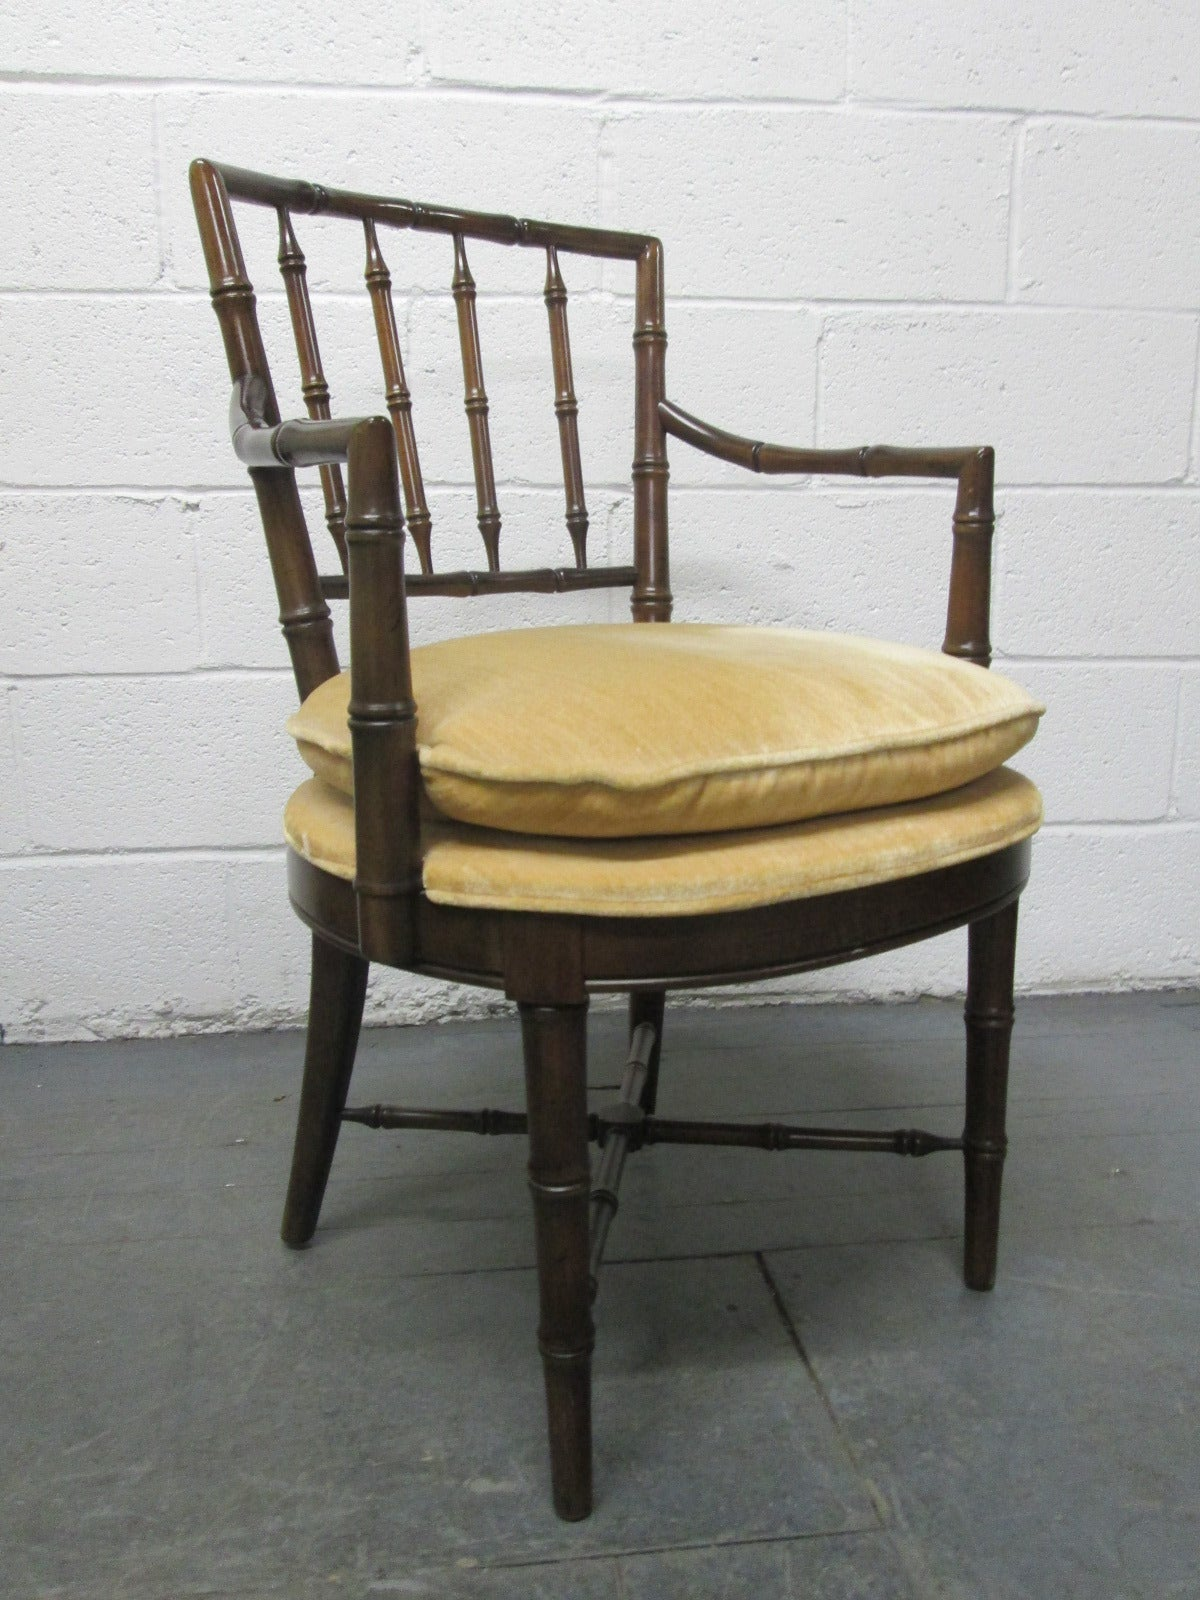 Four faux bamboo armchairs. Has a Chippendale style. Has attached cushioned seats.